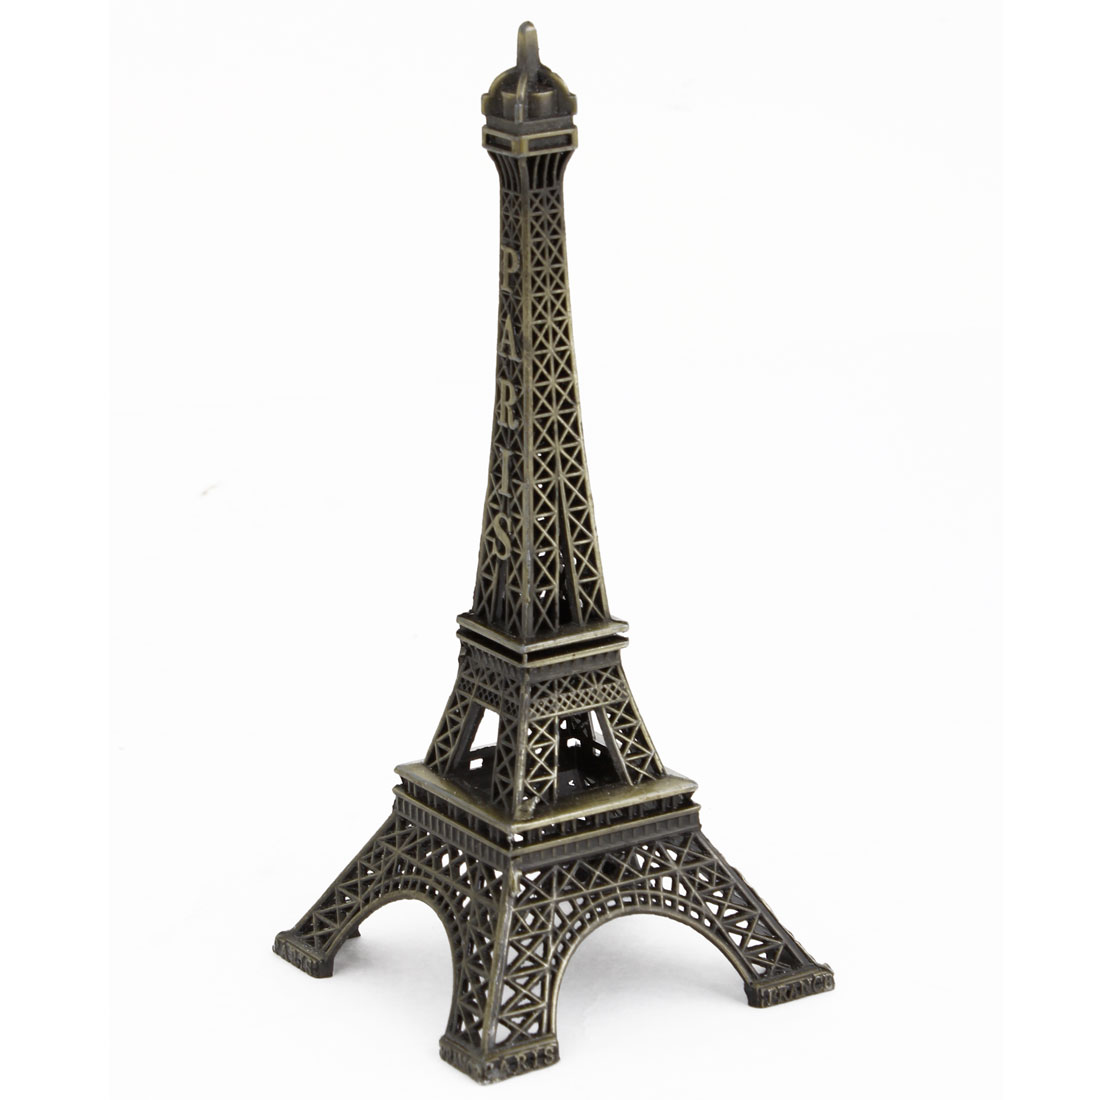 Metal Bronze Tone Eiffel Tower Design Toy Construction Model Desk Decoration